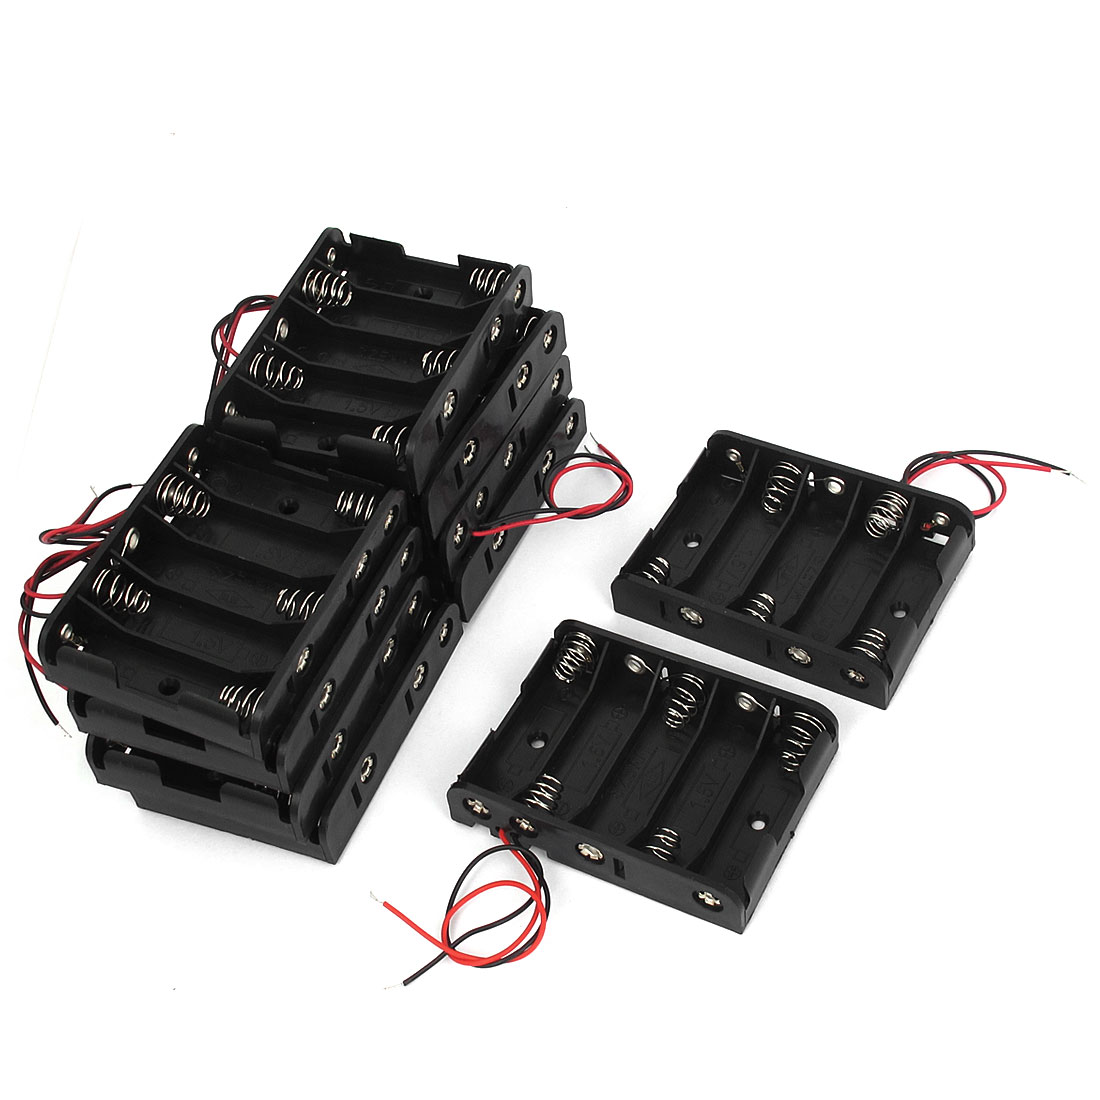 10pcs Plastic Shell 2-Wire 5 x 1.5V AA Battery Case Storage Boxes Holder Black